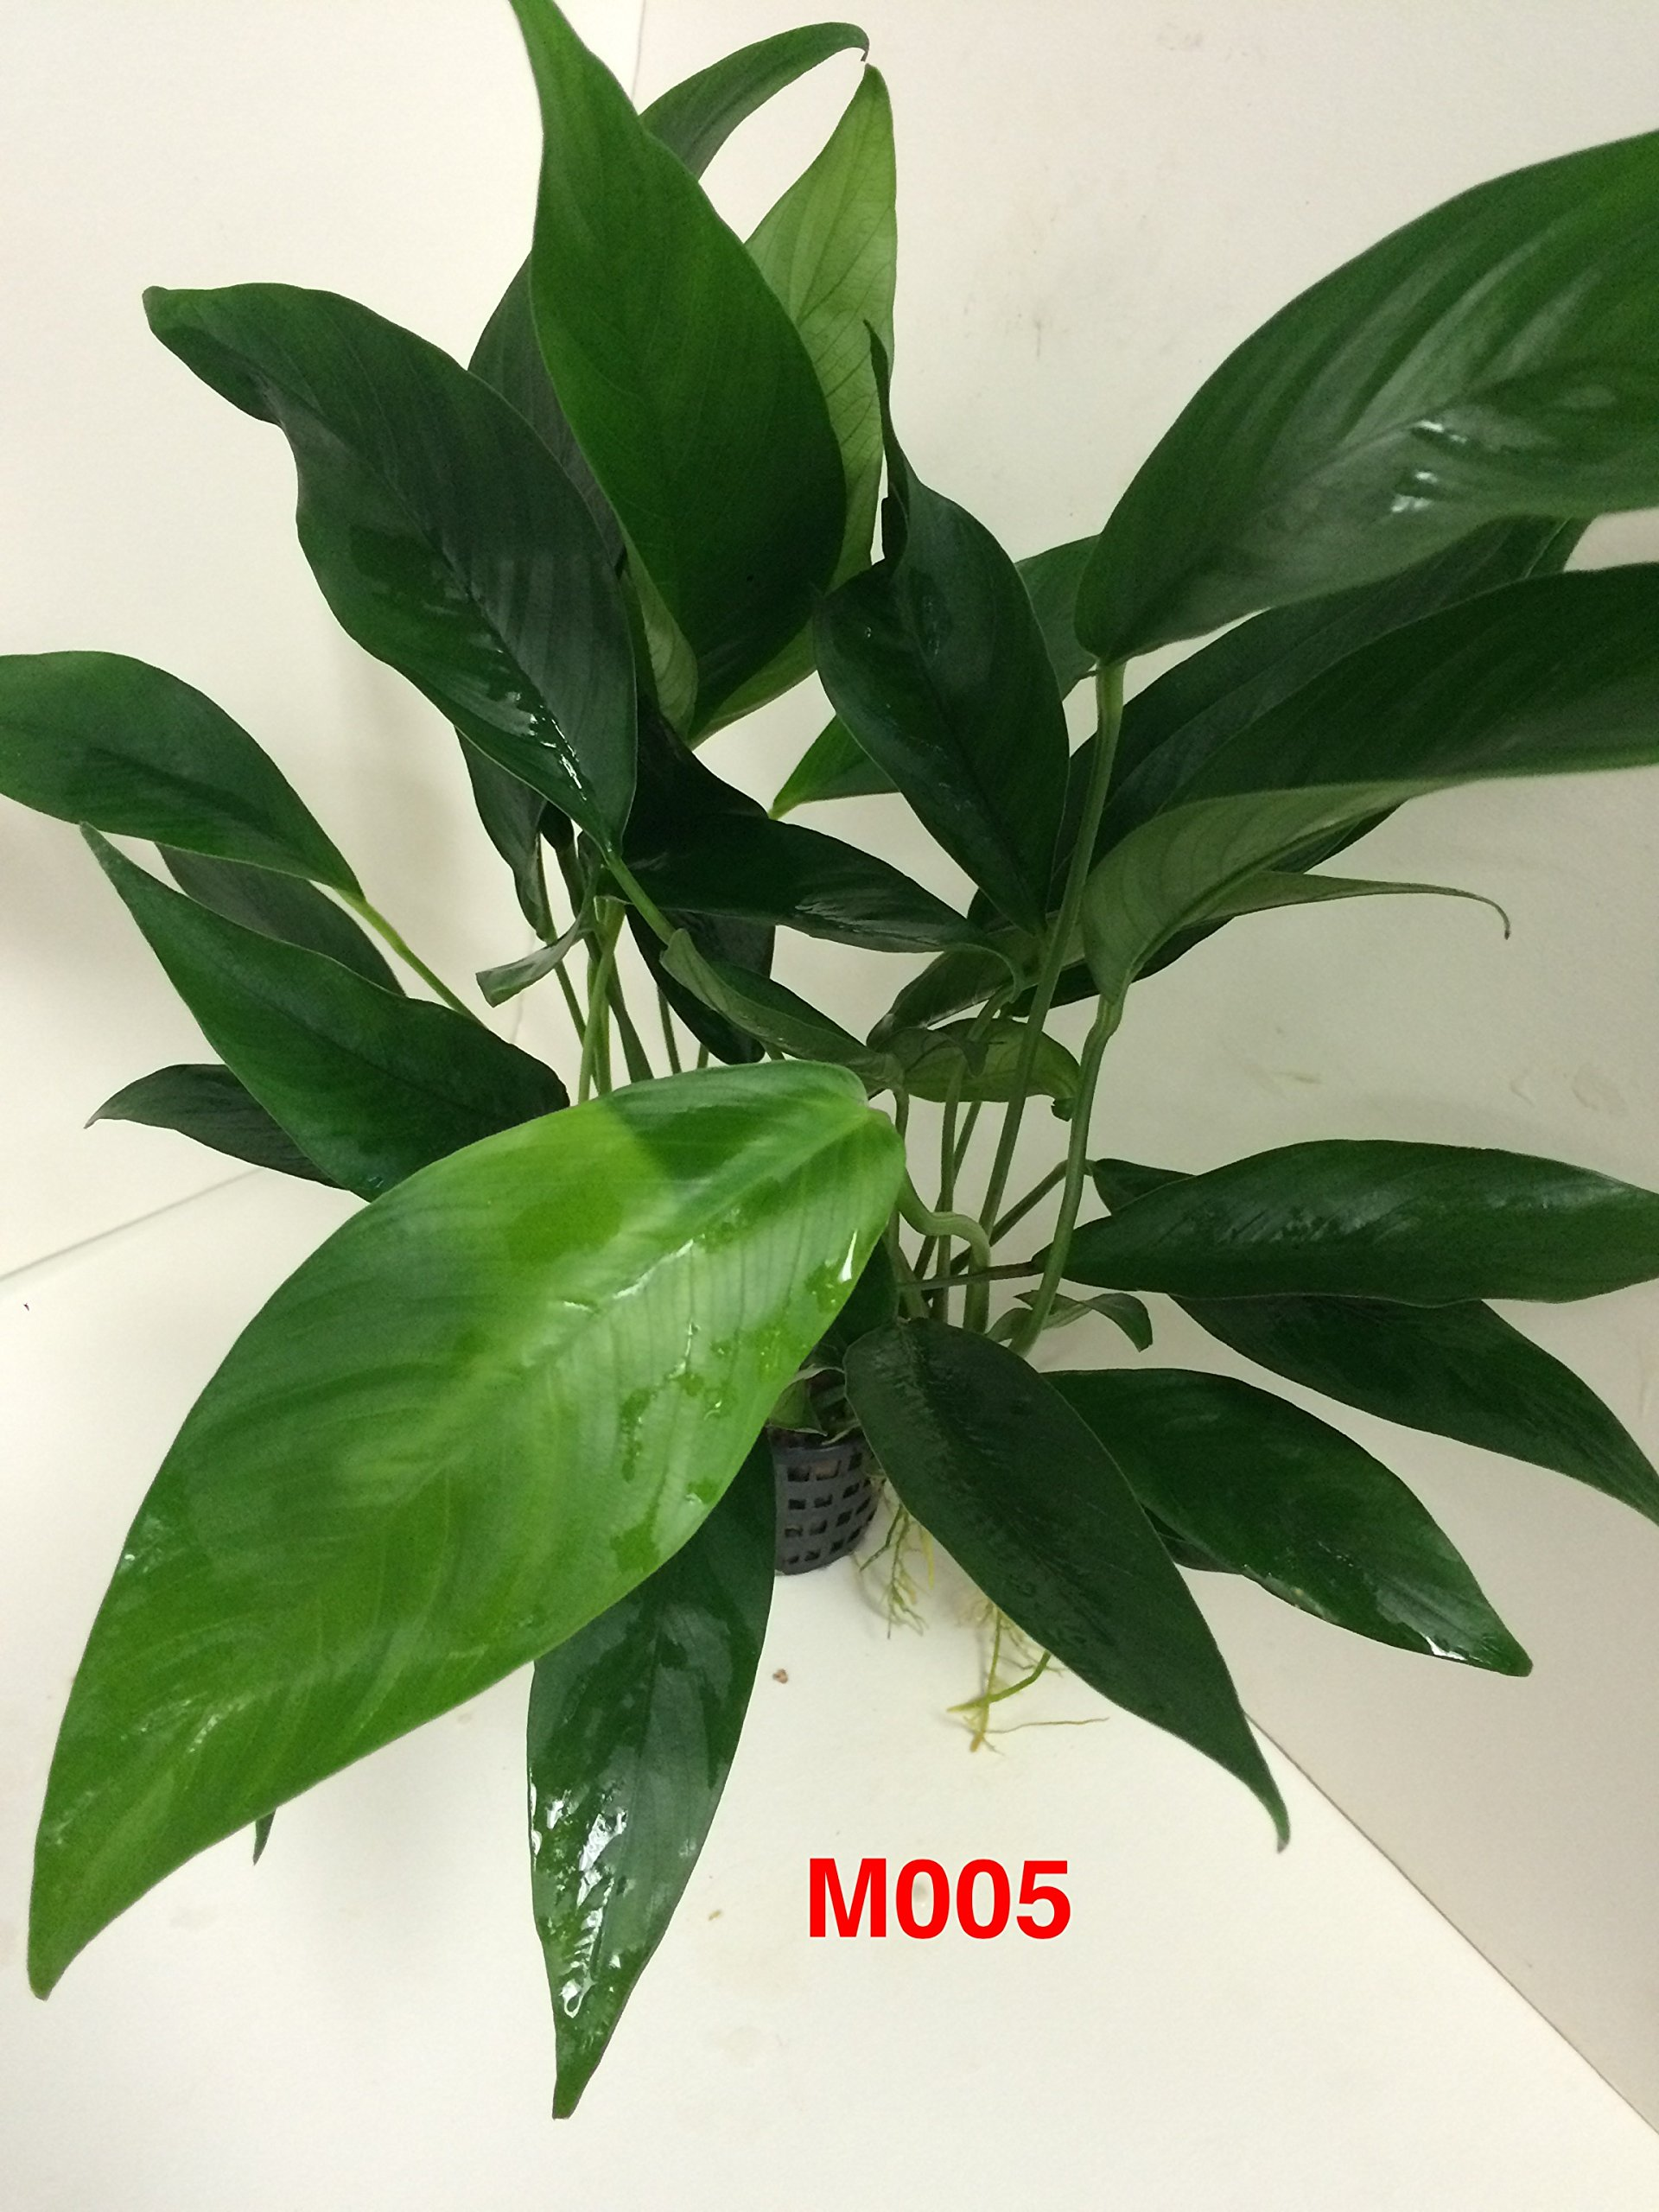 Anubias congensis Mother Pot Plant M005 Live Aquatic Plant by Jayco (Image #2)